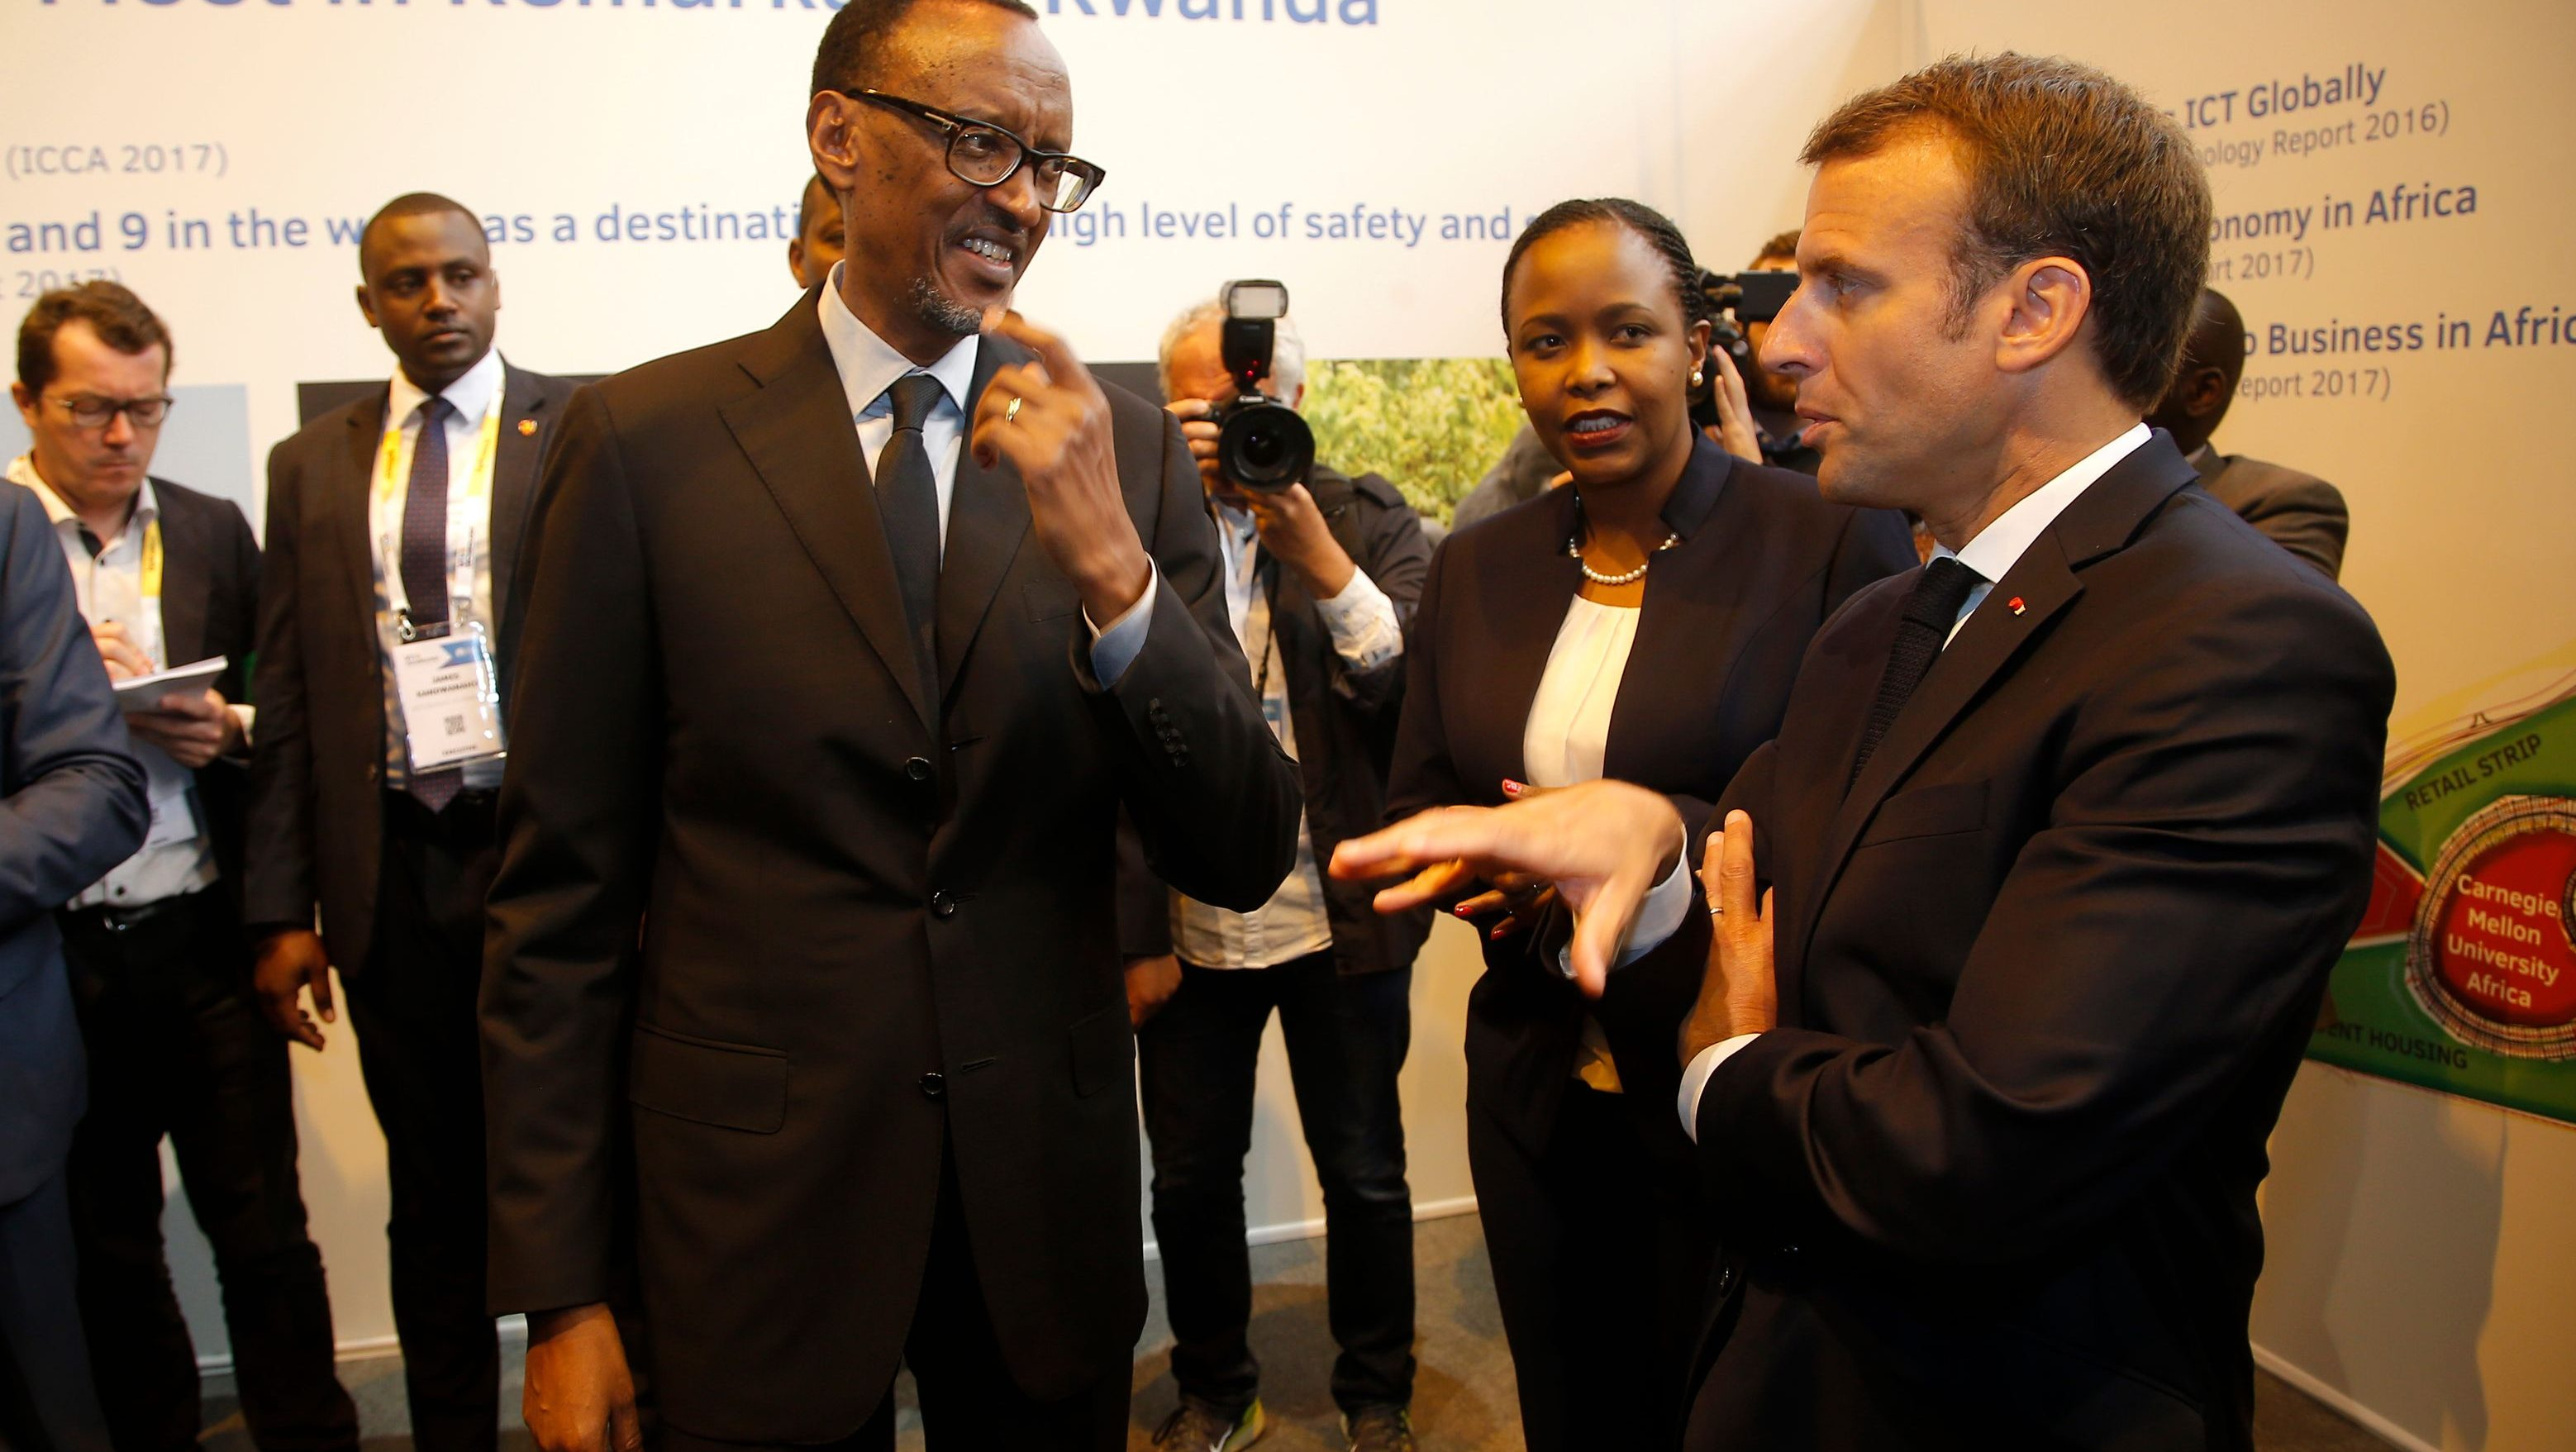 Macron is making another big play for Africa, this time for its startups